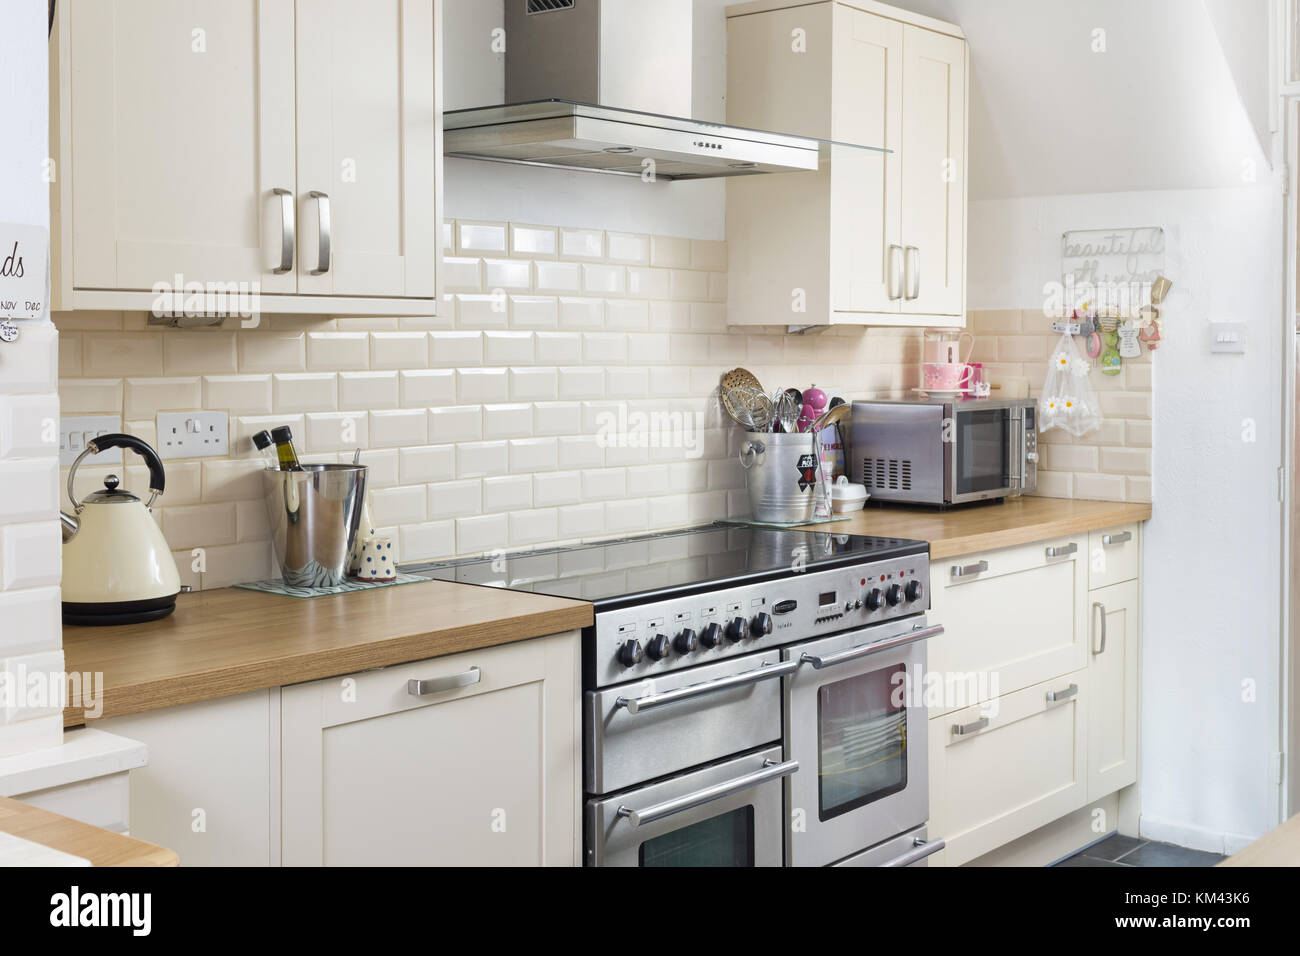 A contemporary kitchen with range cooker - Stock Image